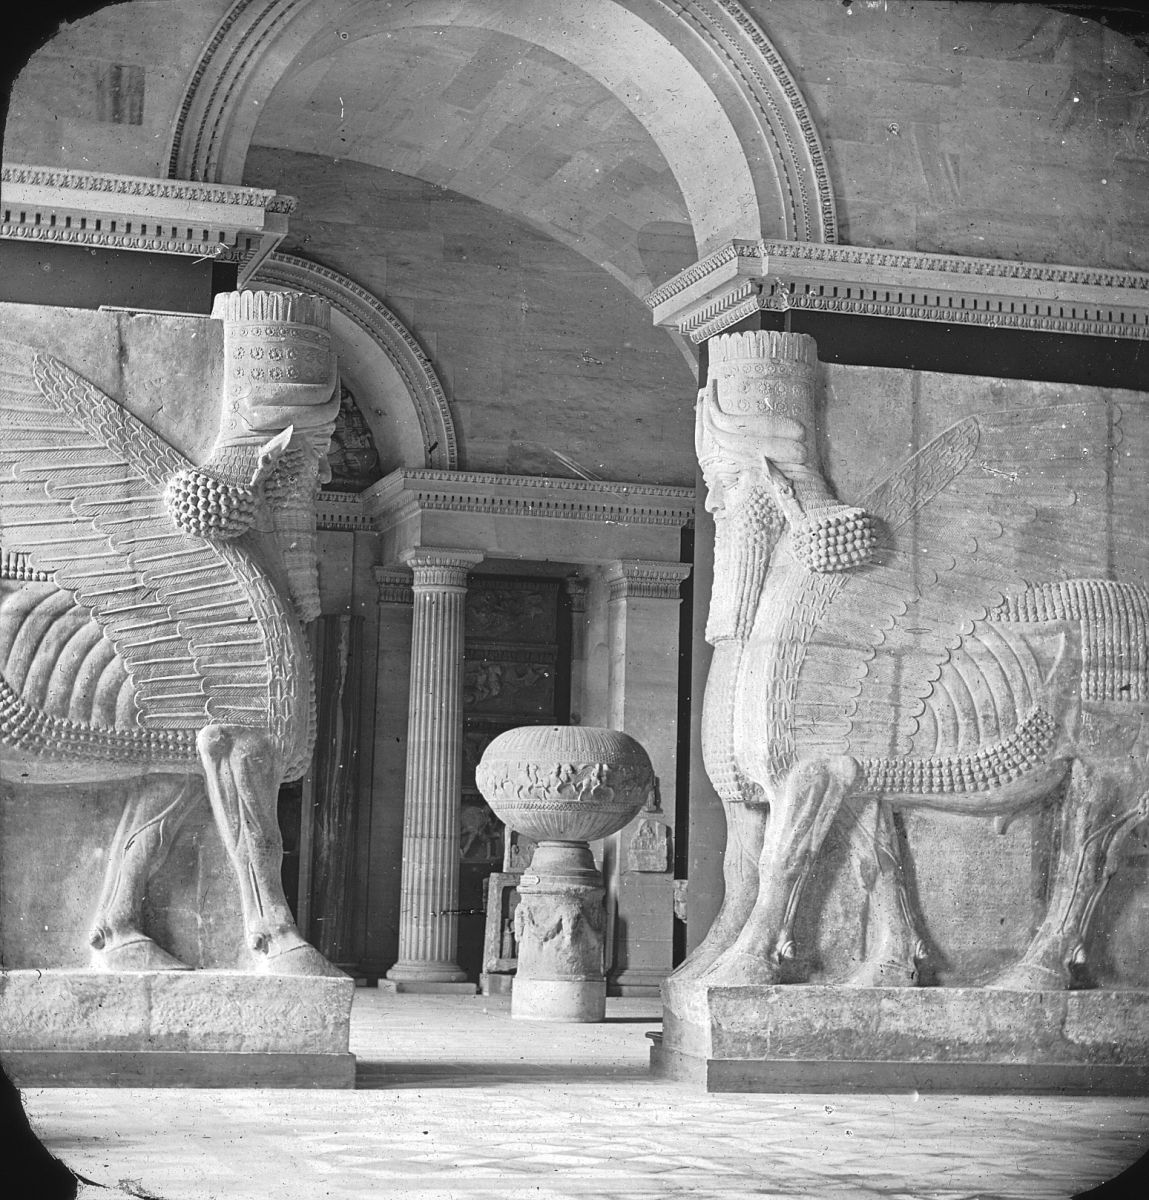 Salón asirio. Museo del Louvre. Década de 1910. William Henry Goodyear Archival Collection.